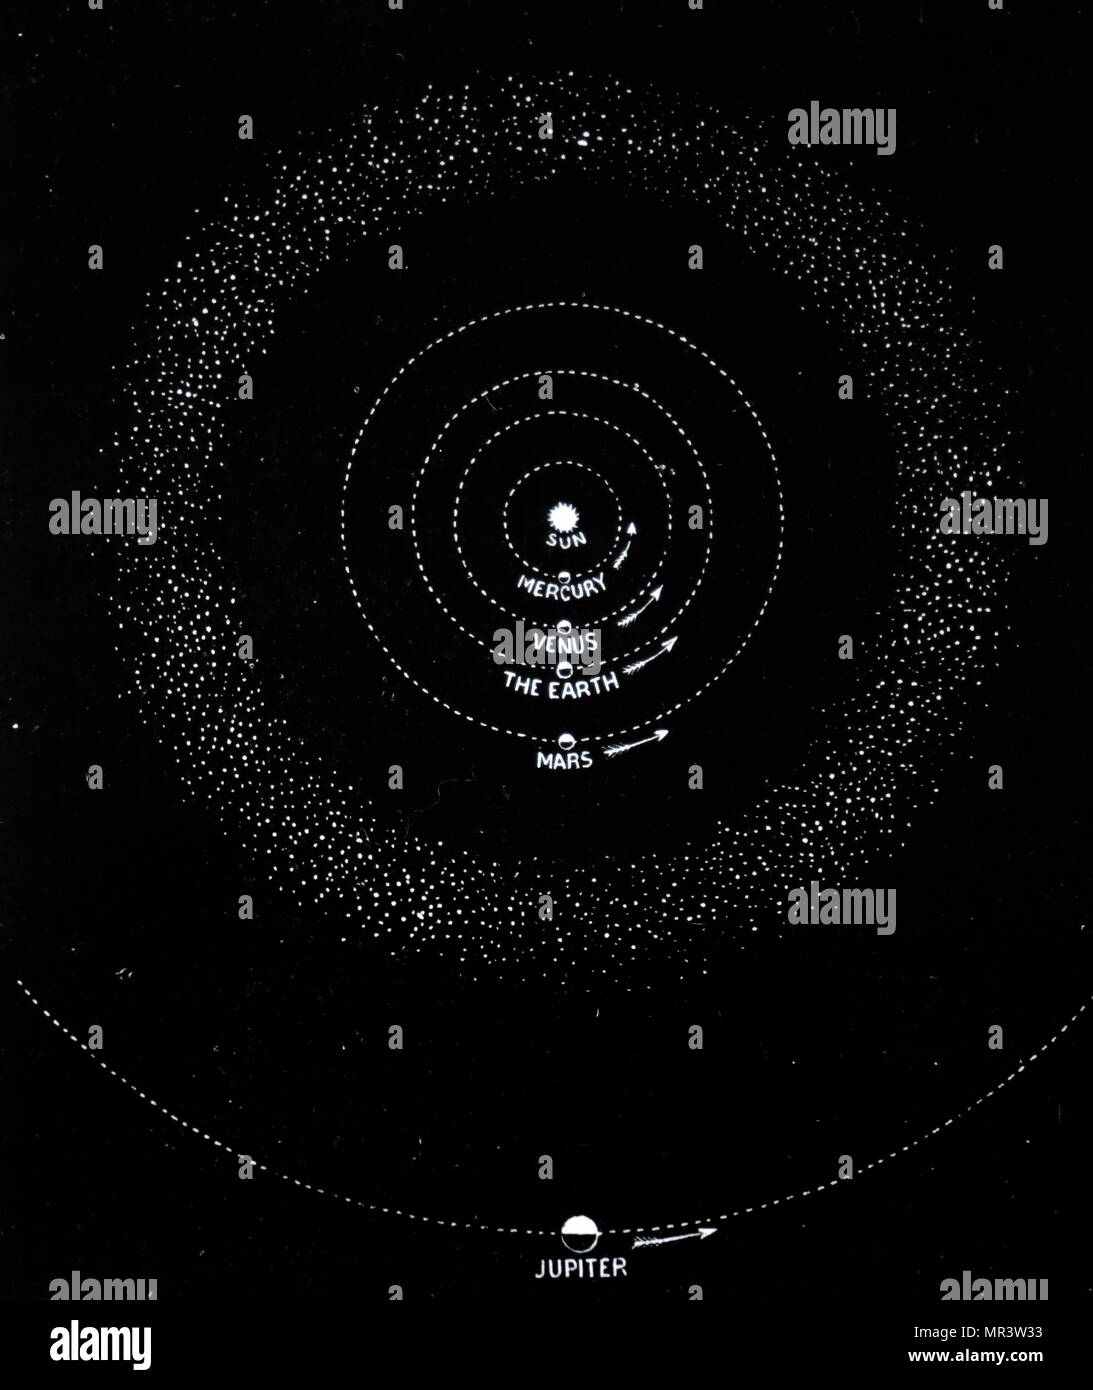 Diagram Of The Planets Stock Photos Mars Fuse Box Solar System Showing Zone Asteroids Planetoids Between And